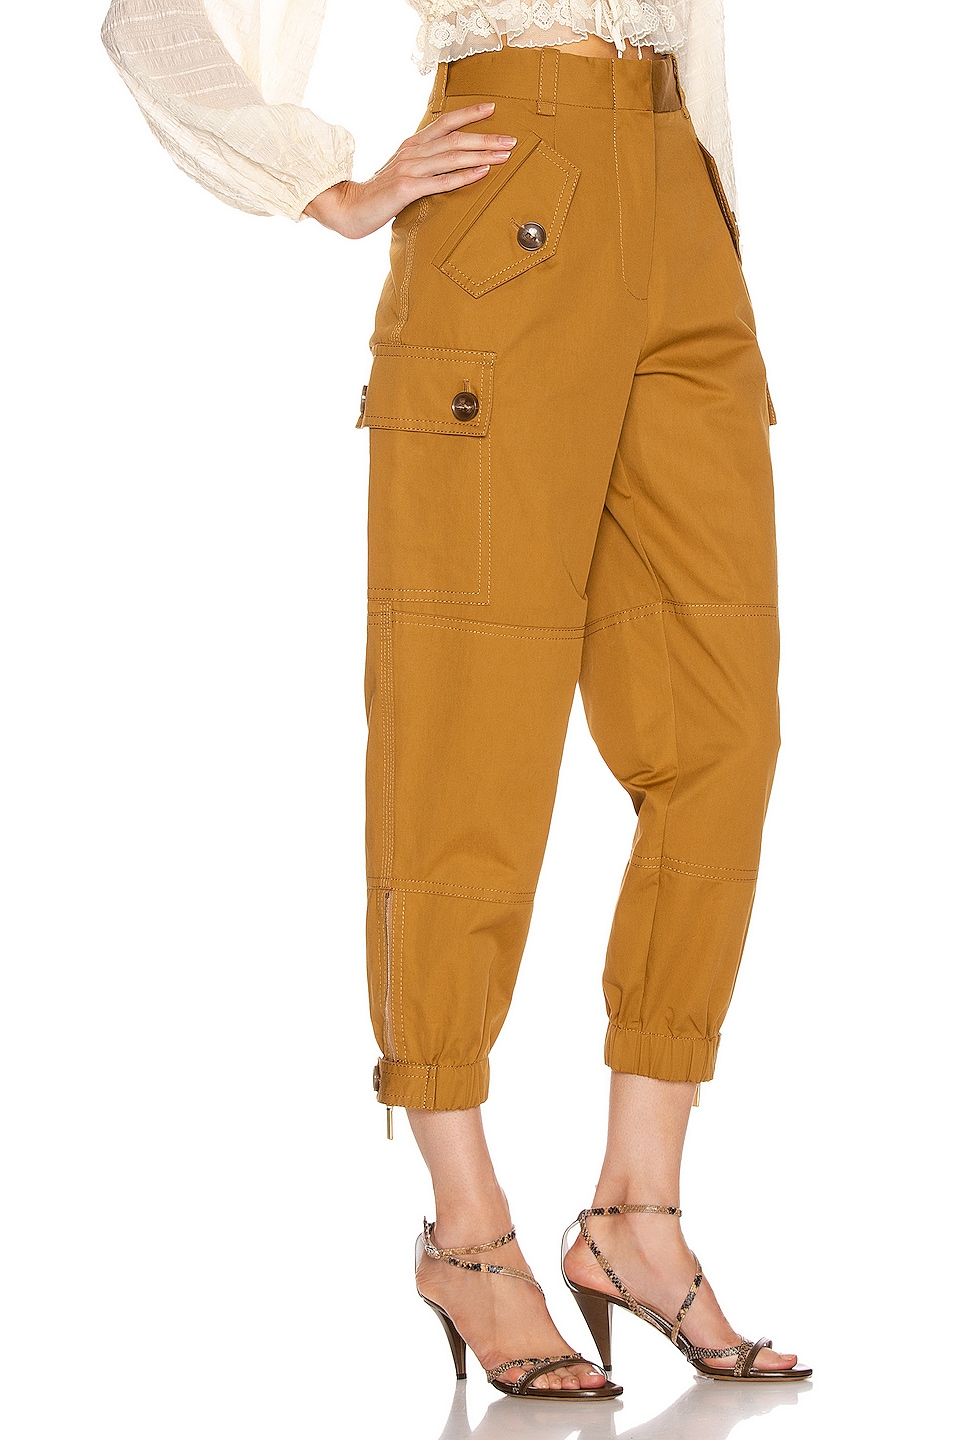 Image 2 of Zimmermann Espionage Army Pant in Ocra